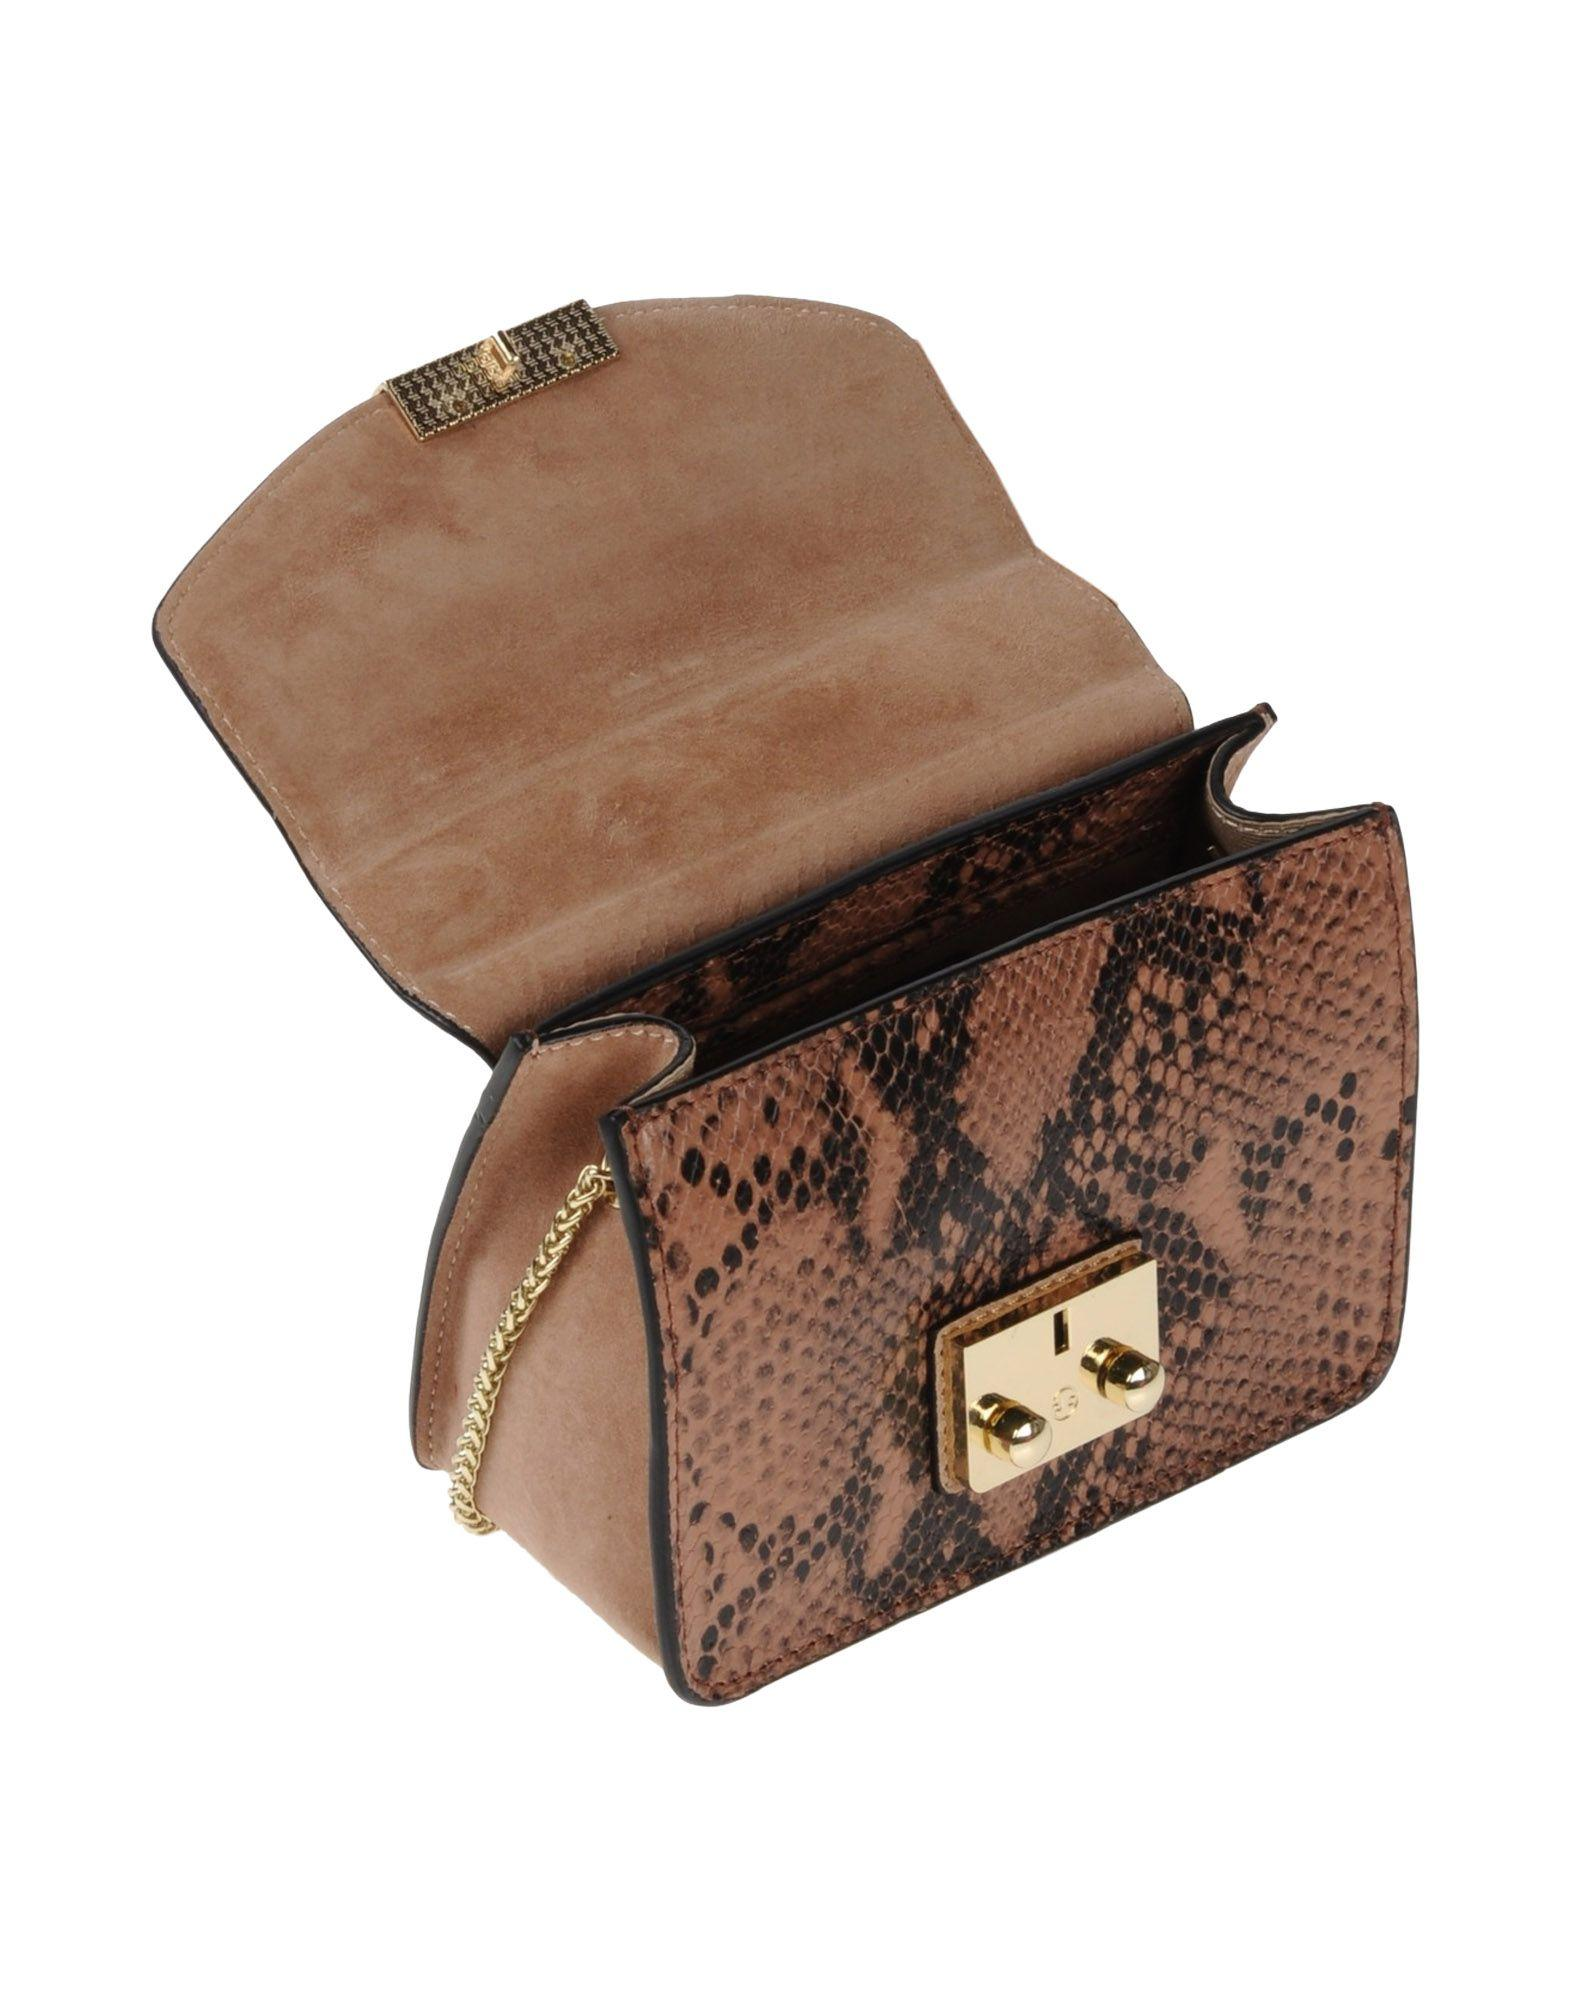 Lola Cruz Leather Cross-body Bag